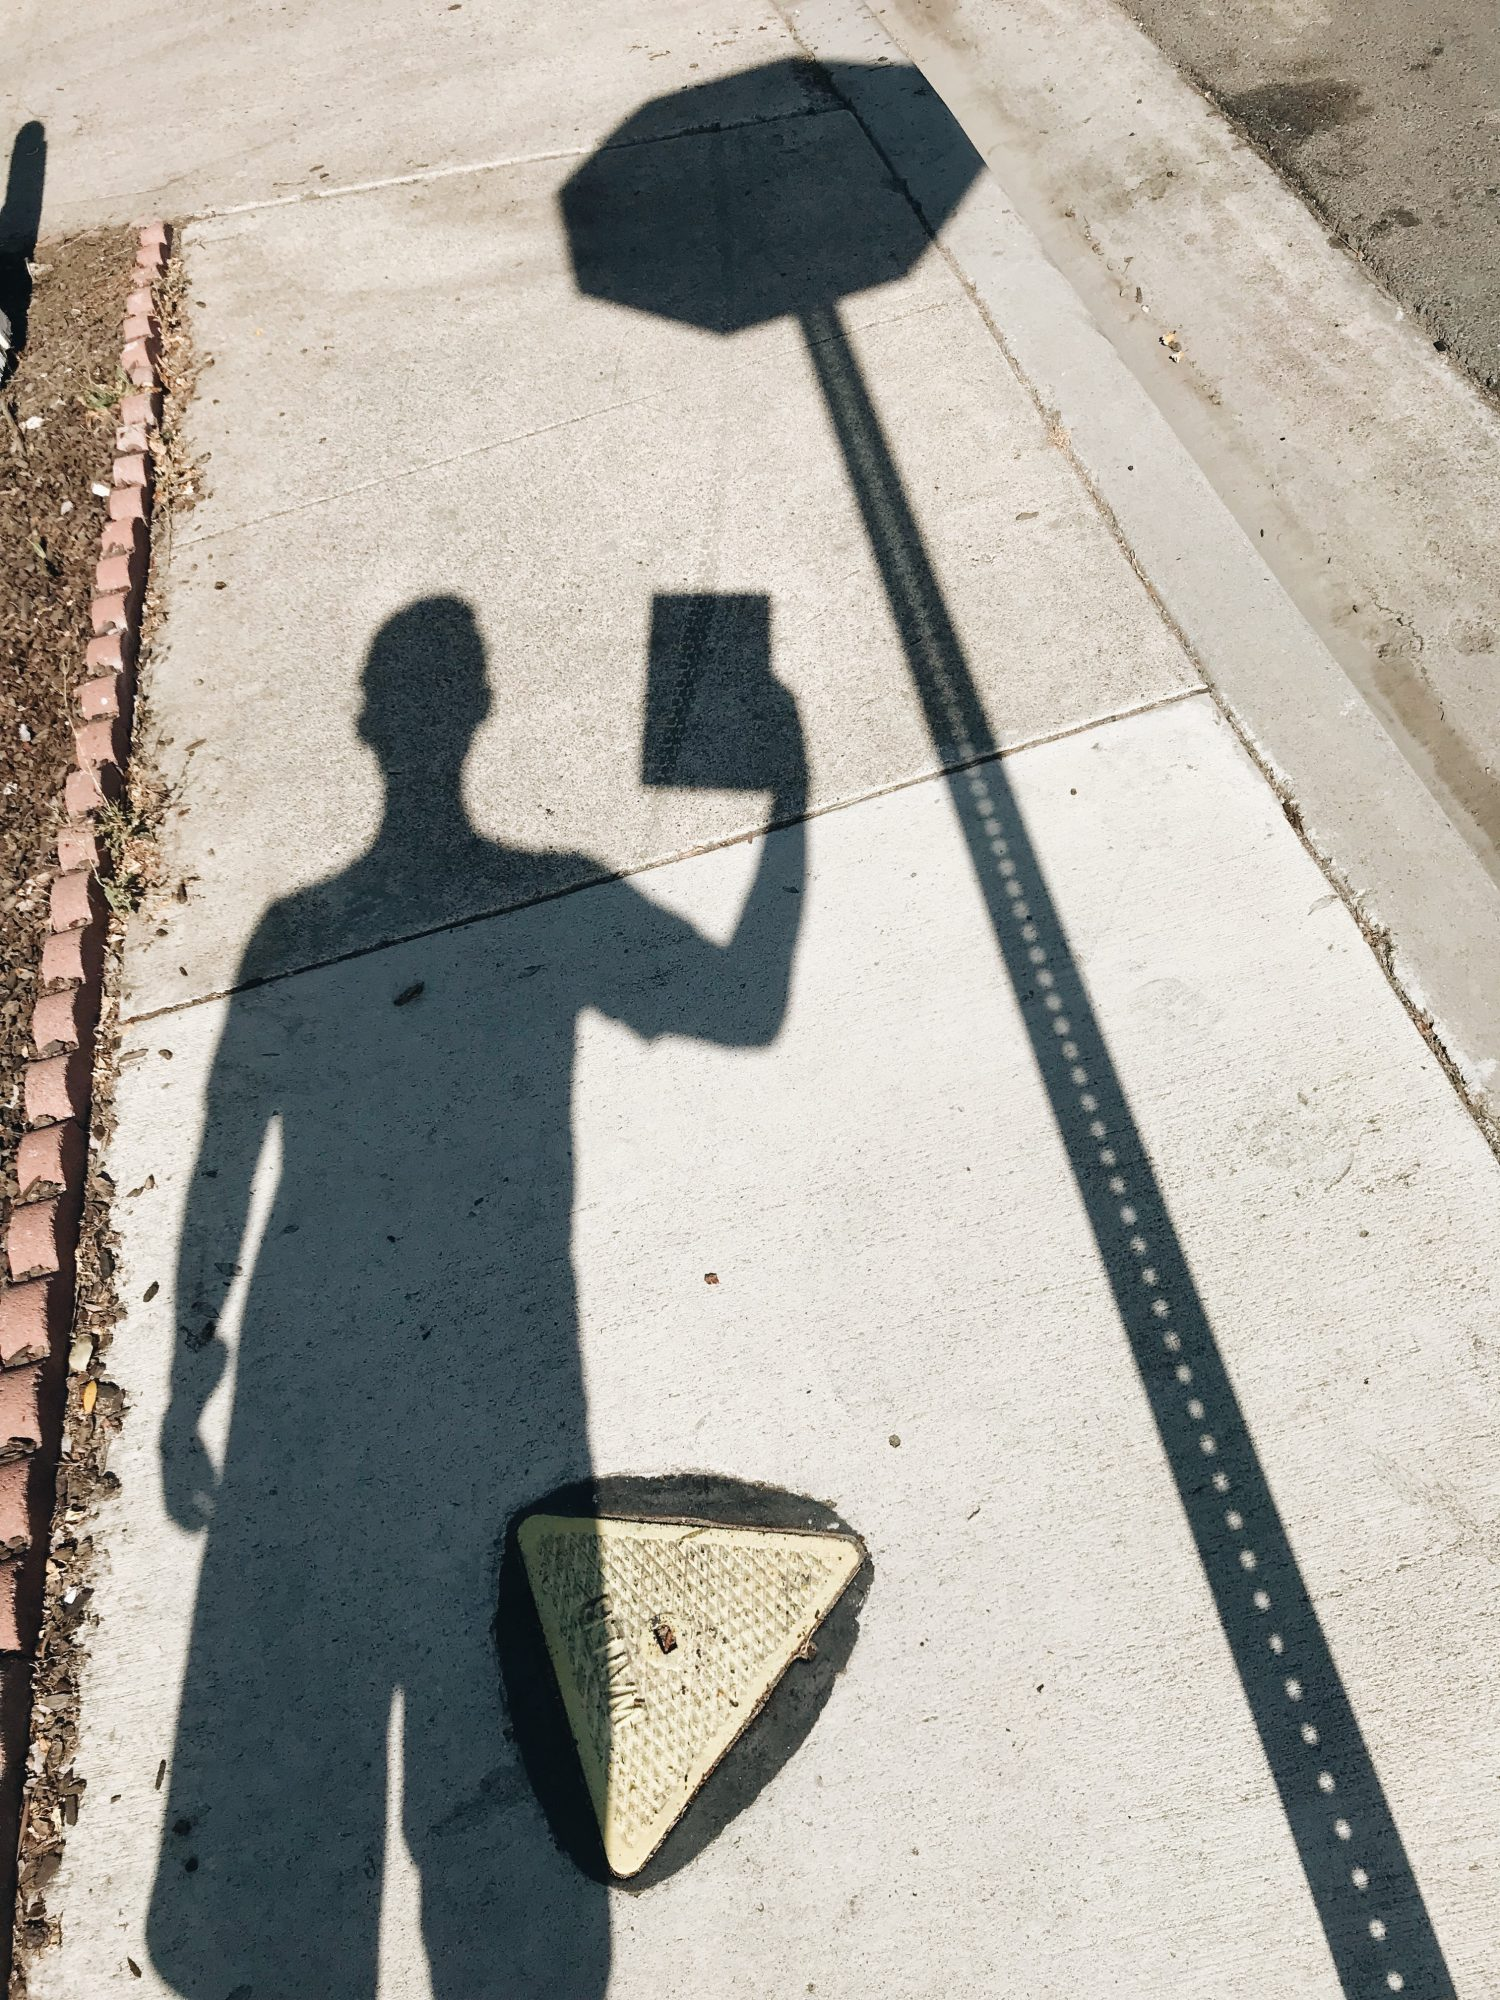 selfie iPad shadow